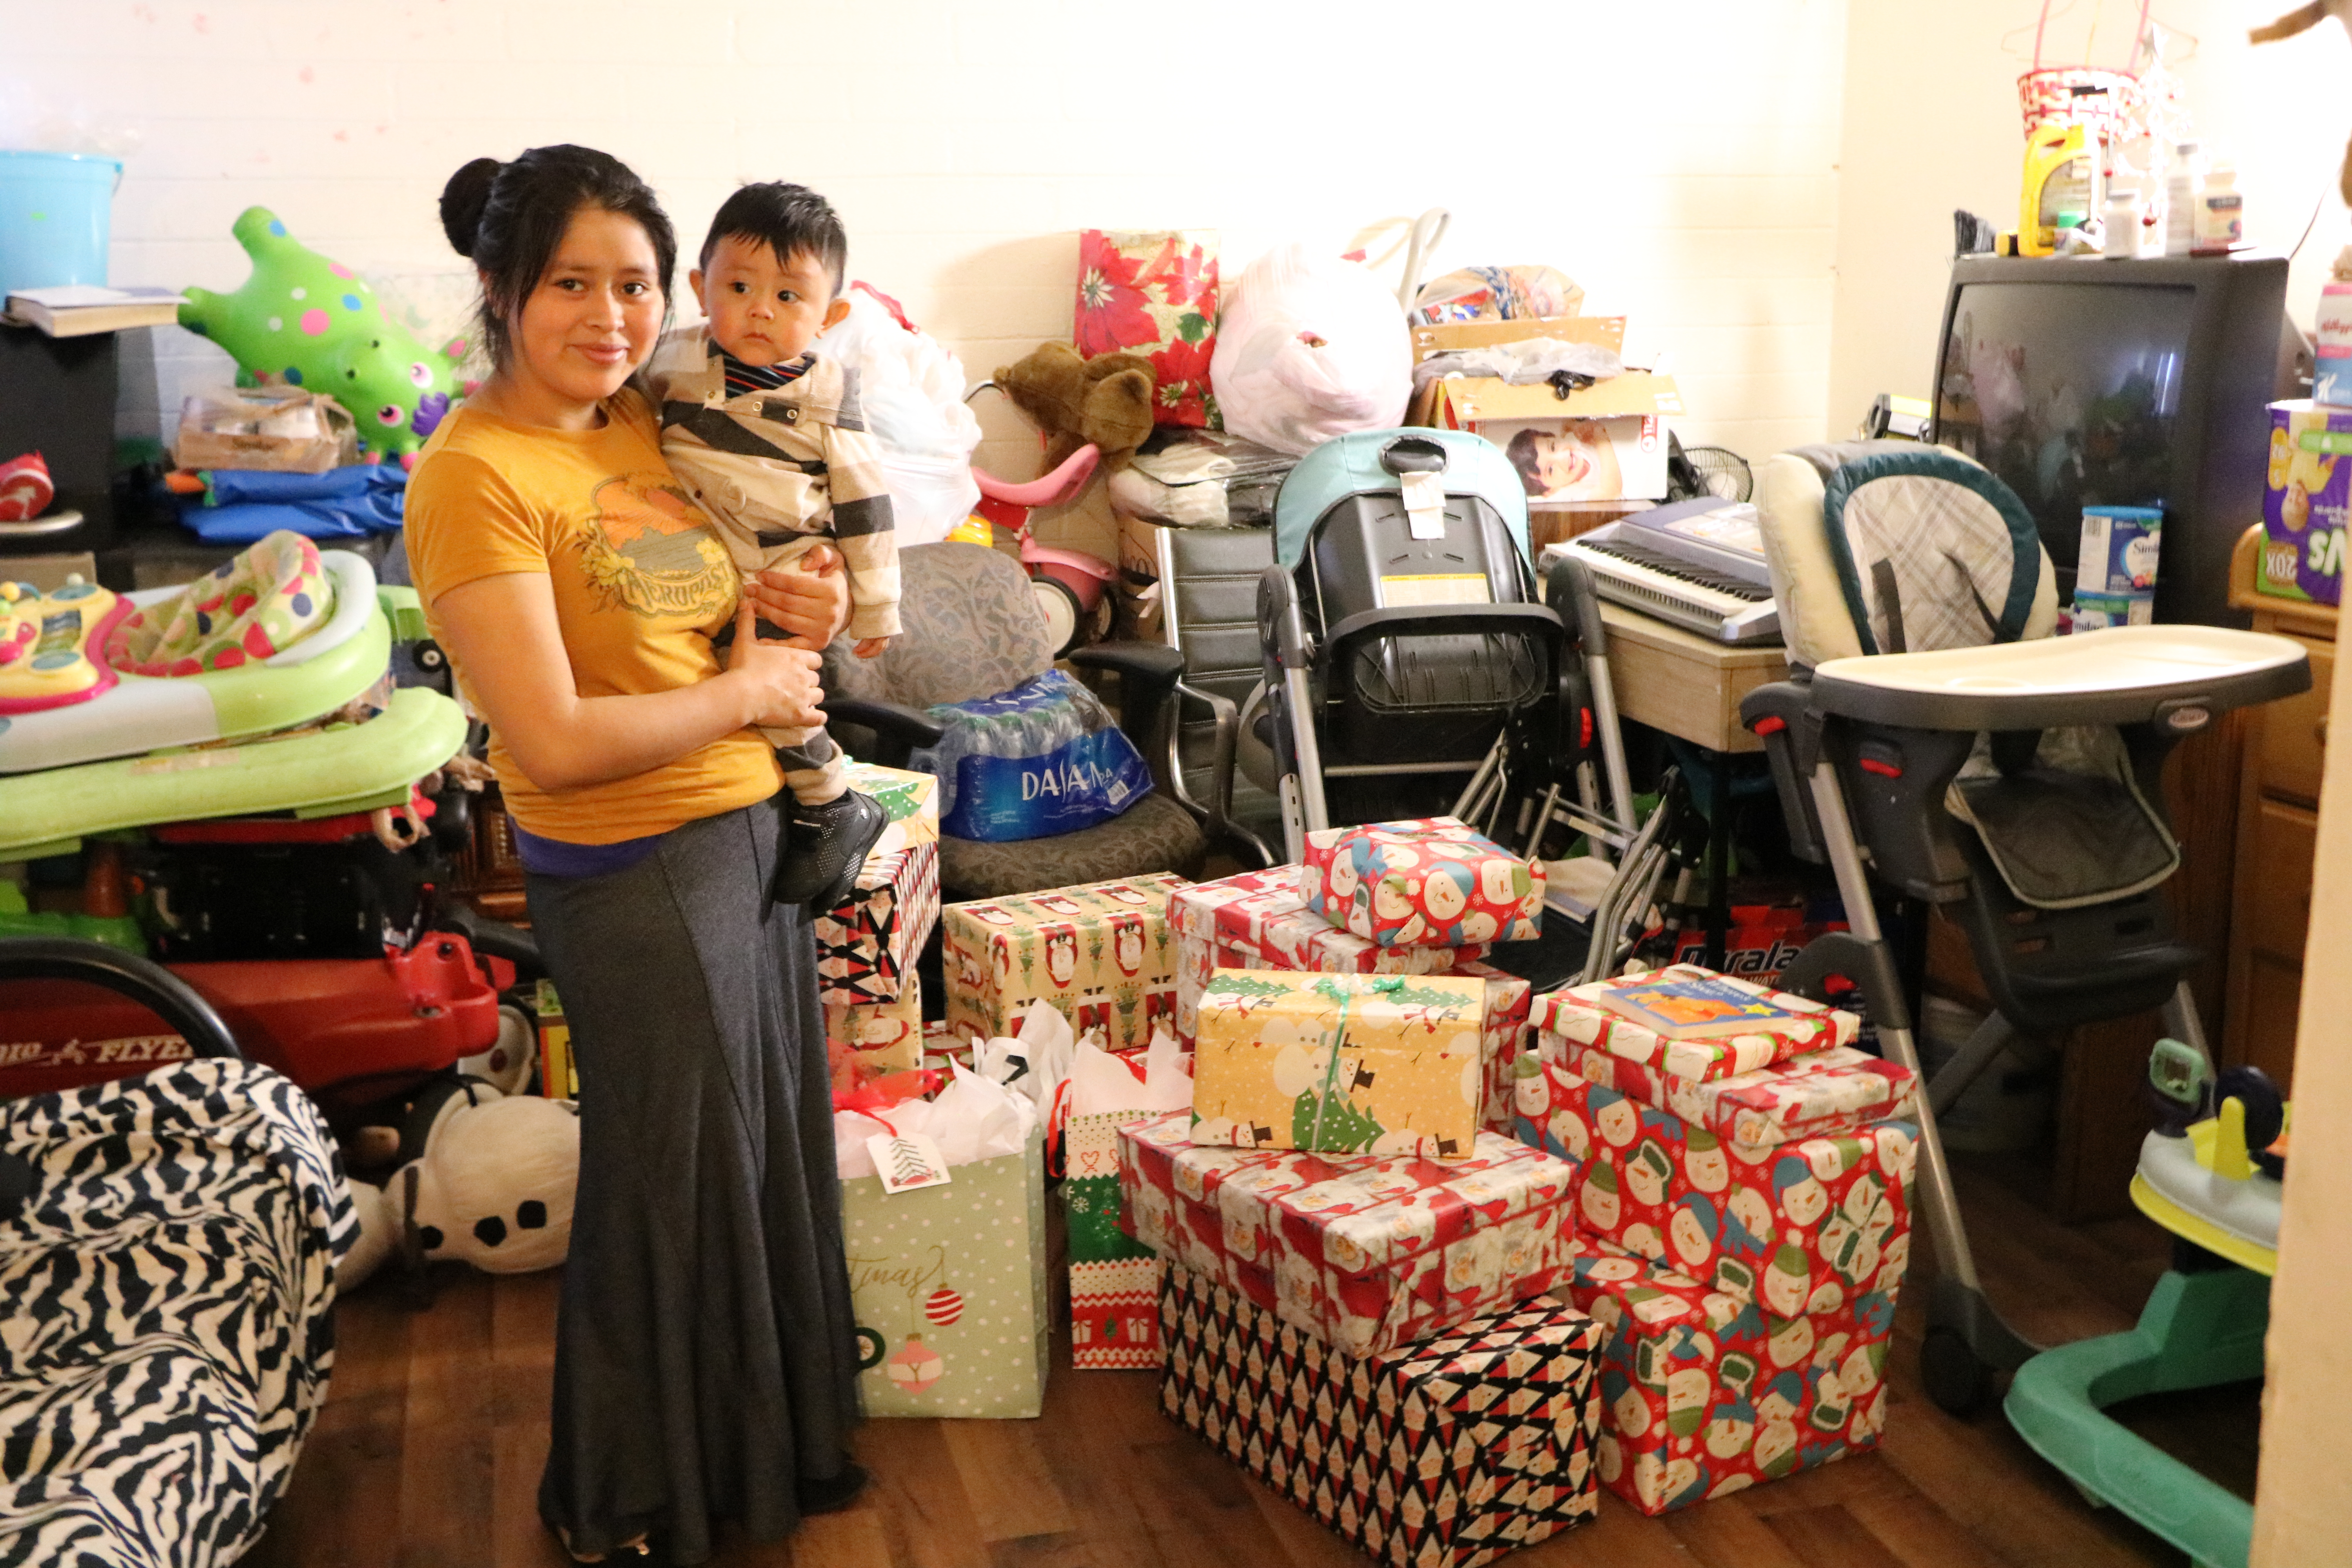 Mother and toddler stand in front of a pile of wrapped gifts